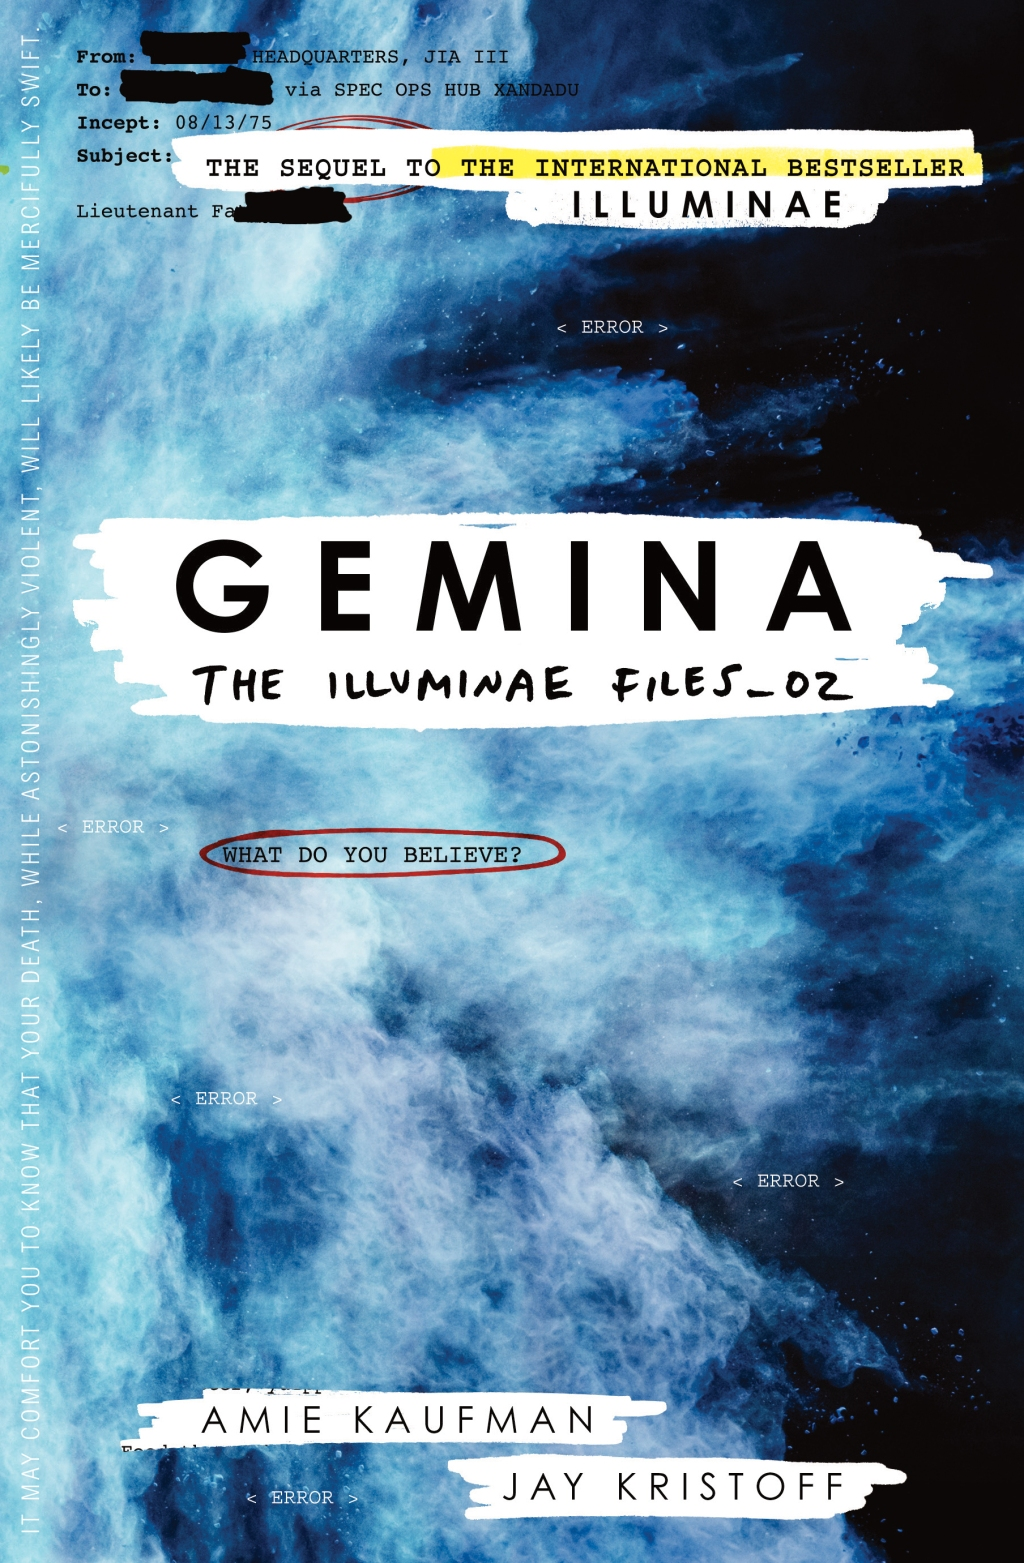 Gemina The Illuminae Files_02 by Amie Kaufman and Jay Kristoff book cover